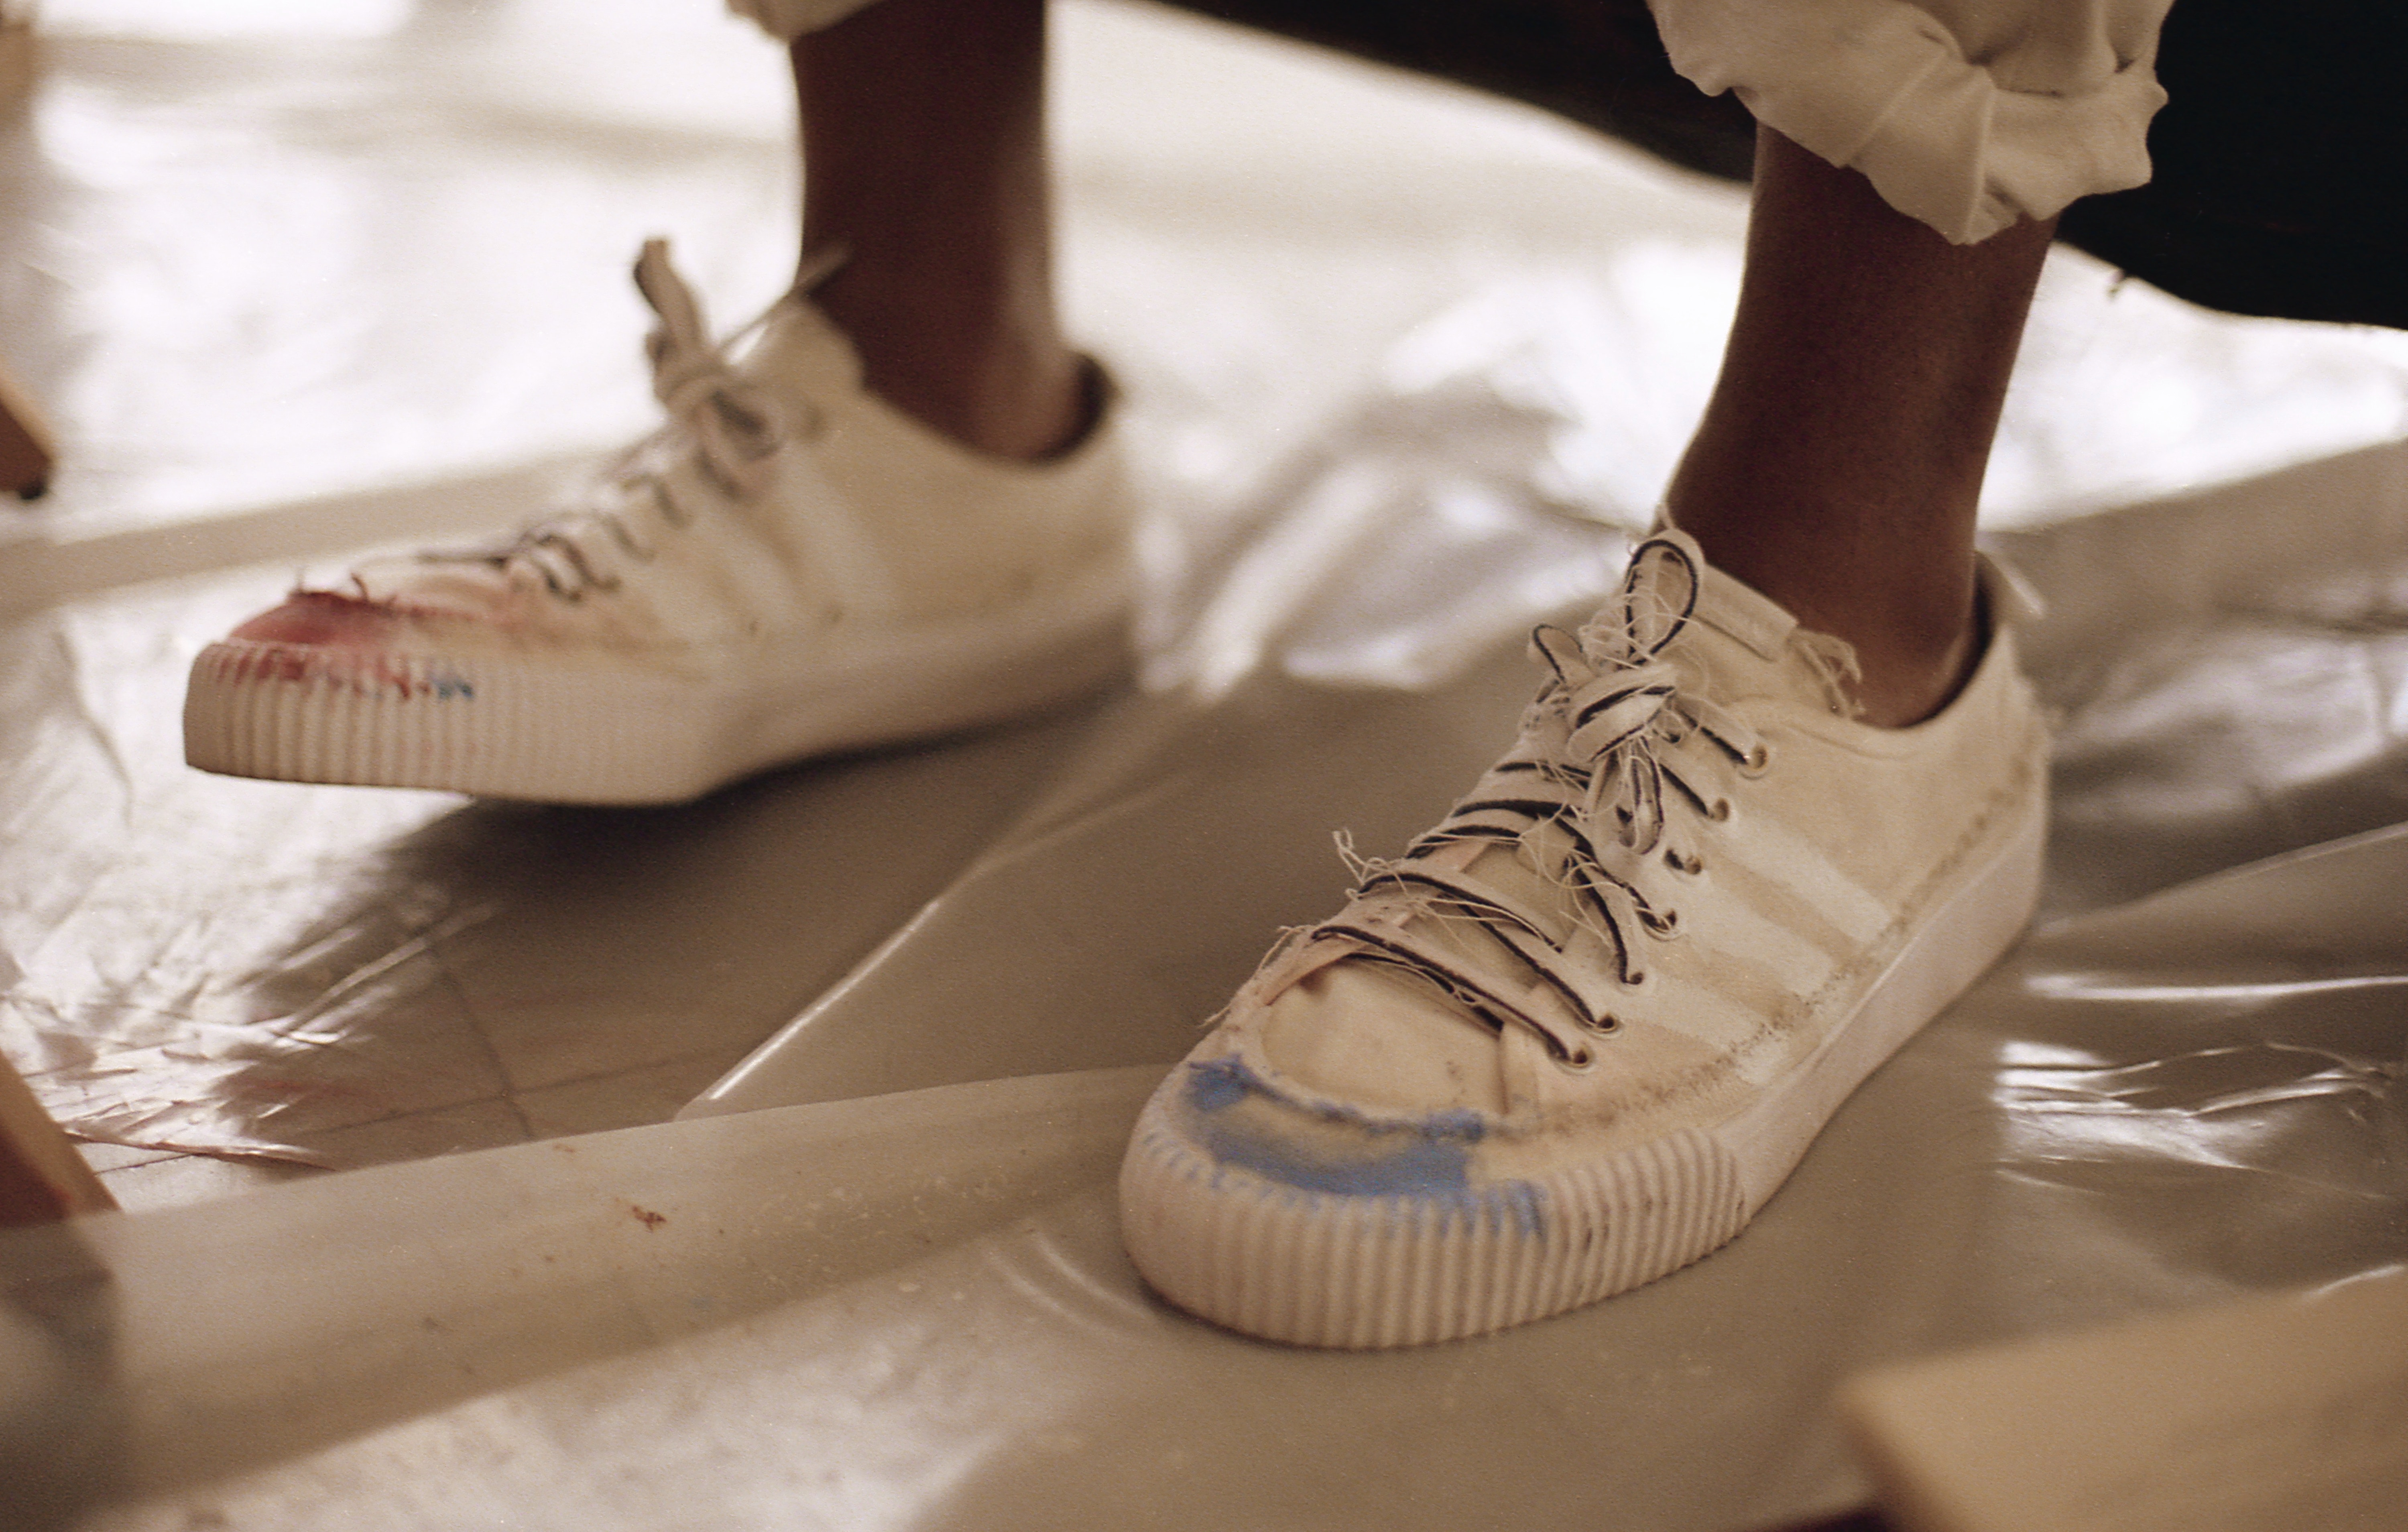 The Donald Glover x Adidas Collab Is All About The Stories